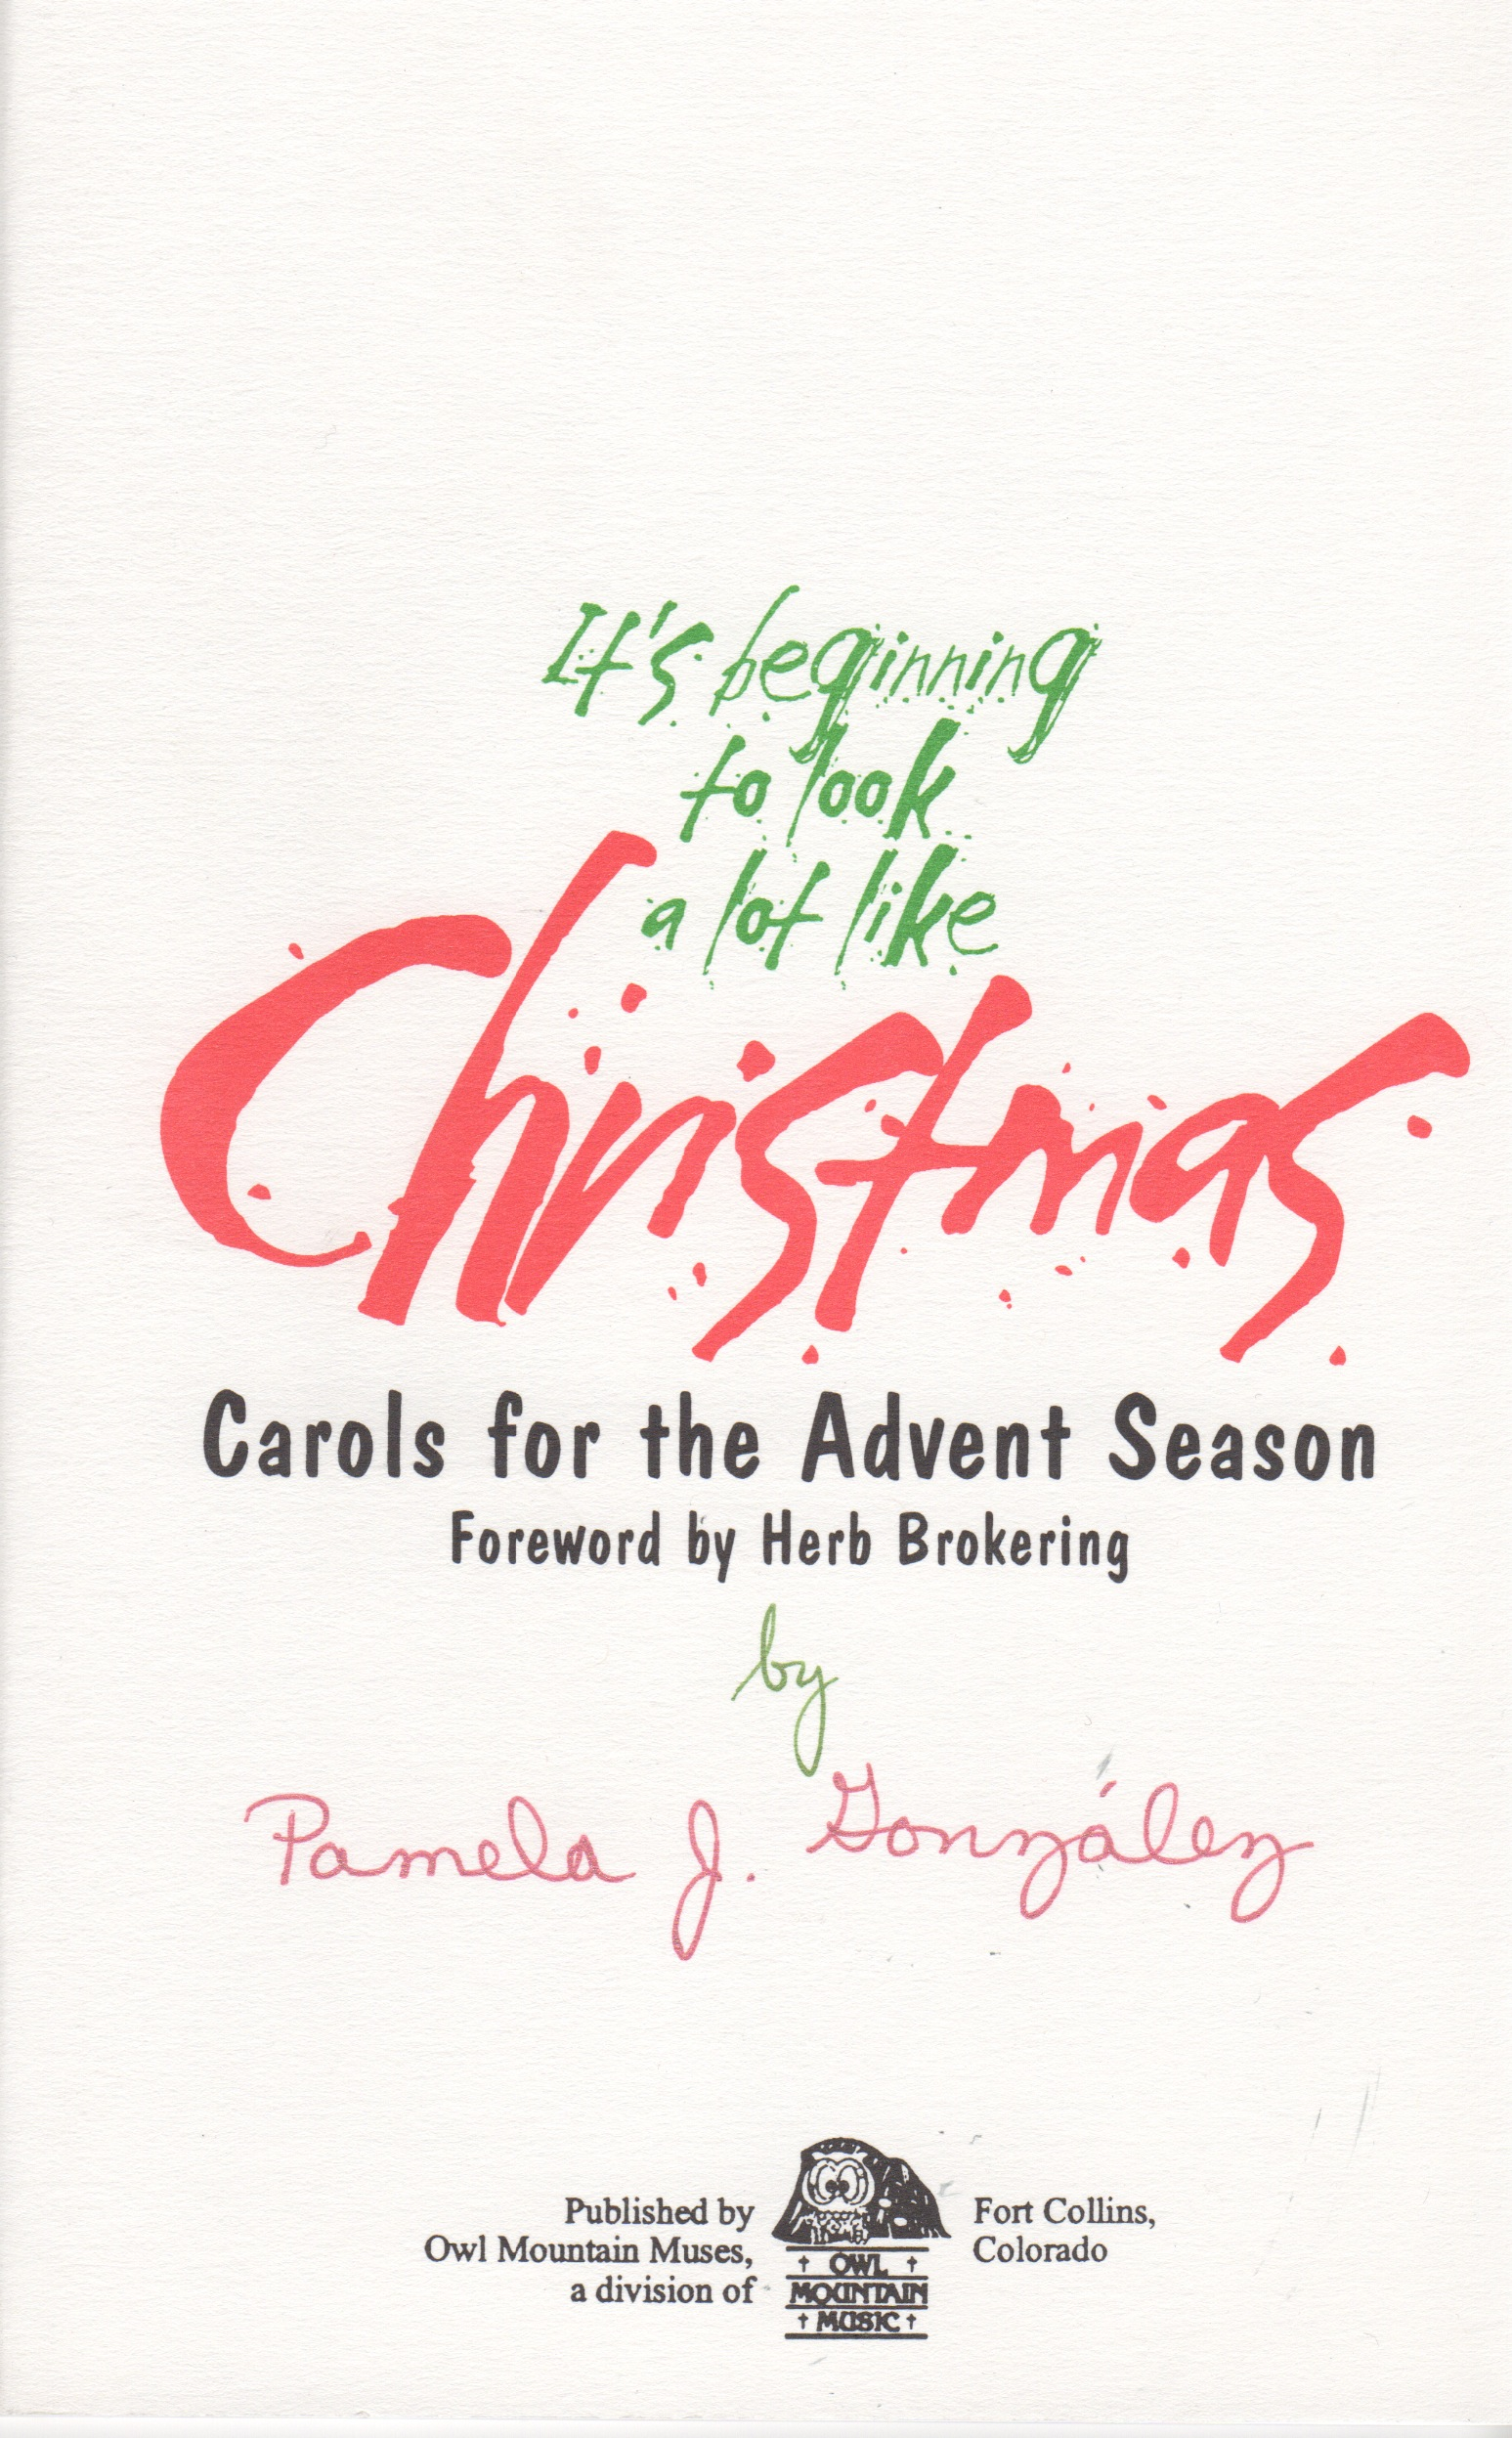 It\'s Beginning to Look a lot Like Christmas, pamela gonzalez